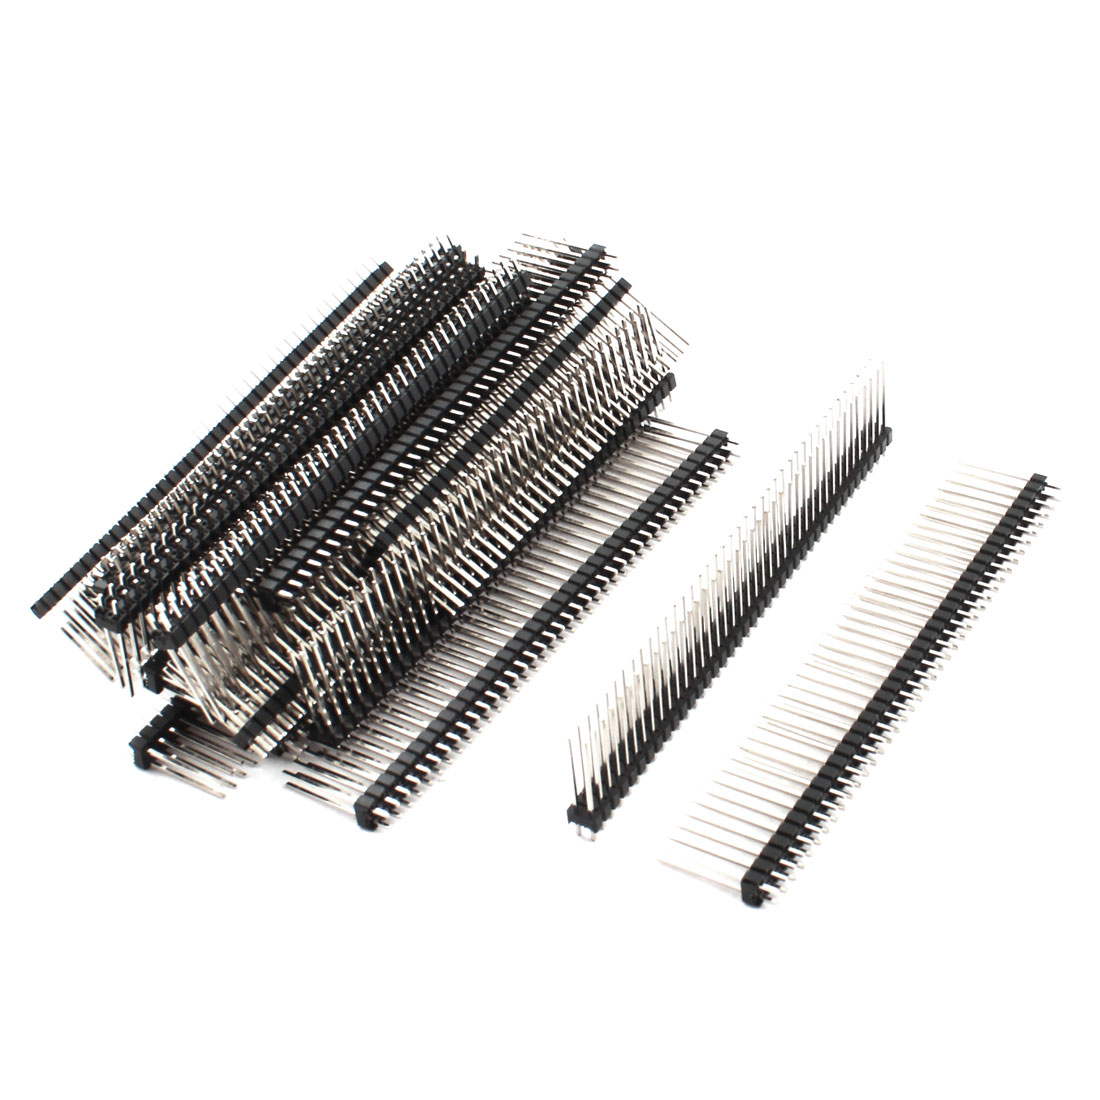 20Pcs 2.54mm Pitch Double Row 80-Pin Male Through Hole Straight Pin Header Connector Strip 20mm Length